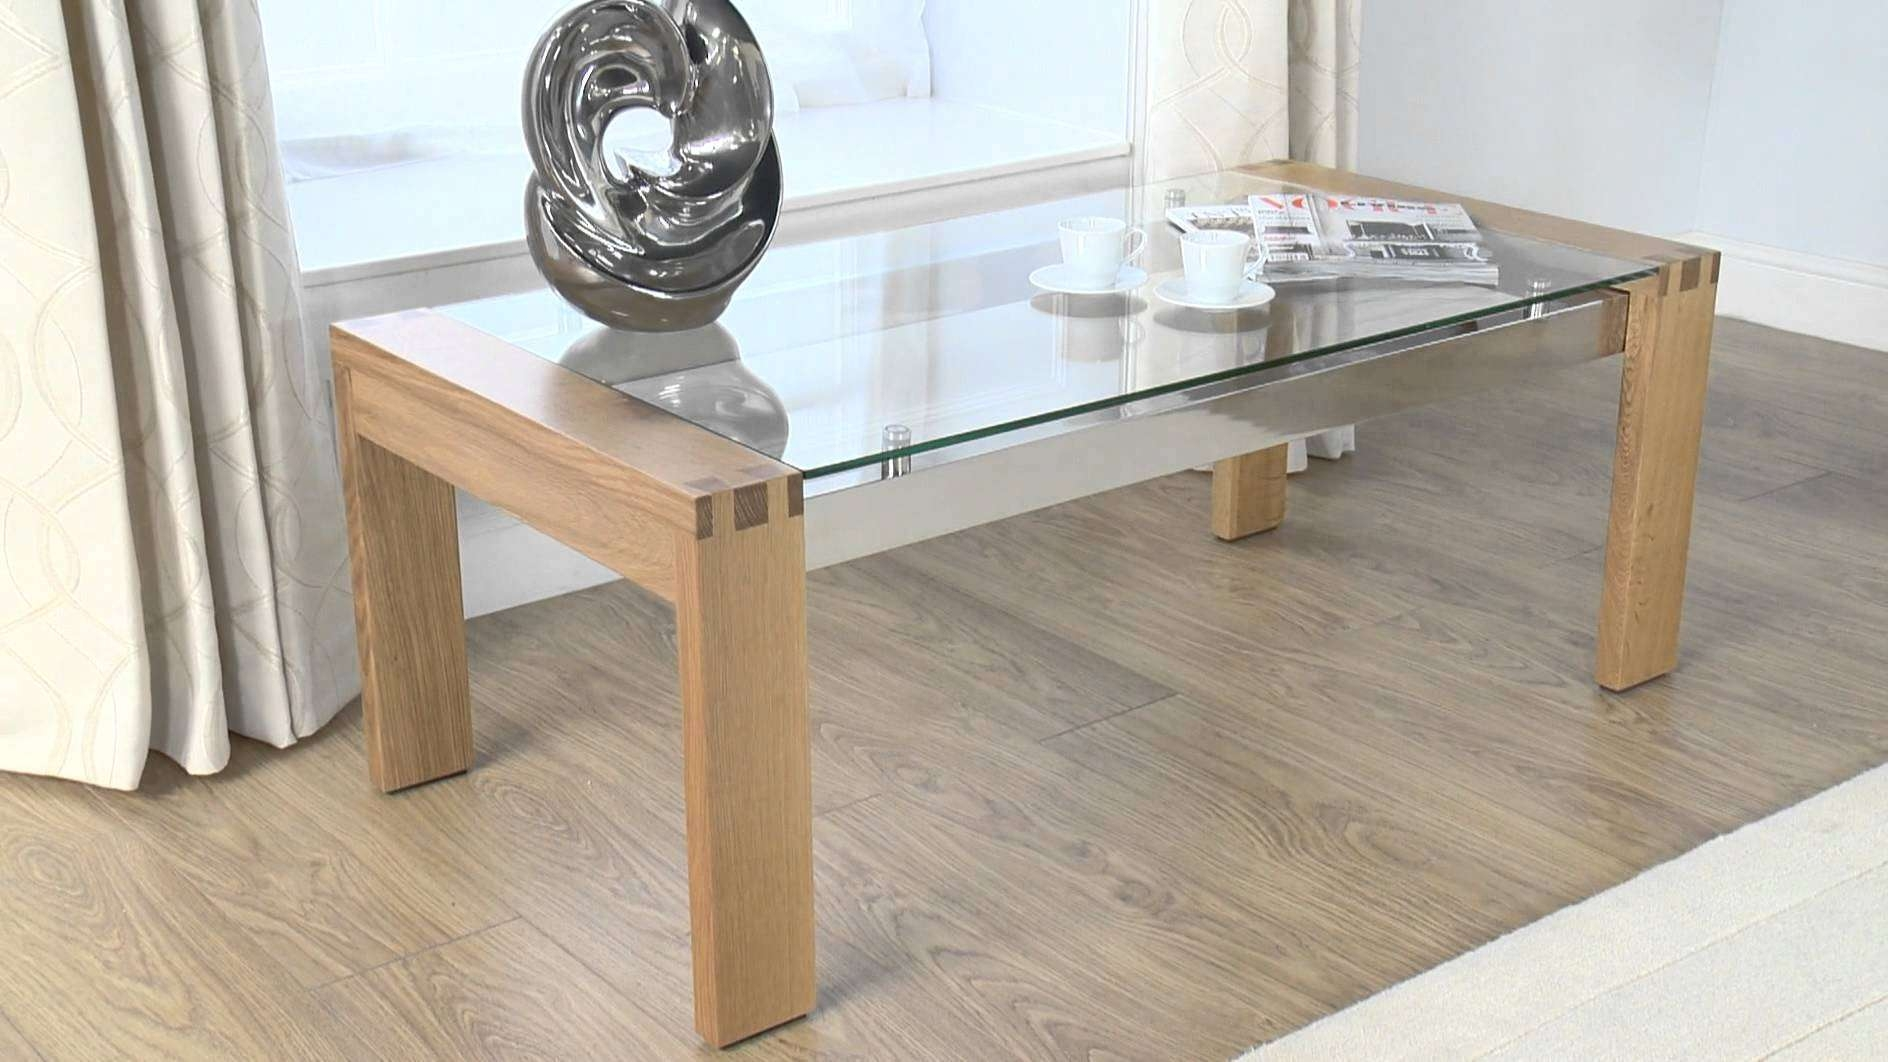 Most Current Oak Coffee Table With Glass Top In Coffee Table : Marvelous Small Glass Coffee Table Living Room (View 8 of 20)